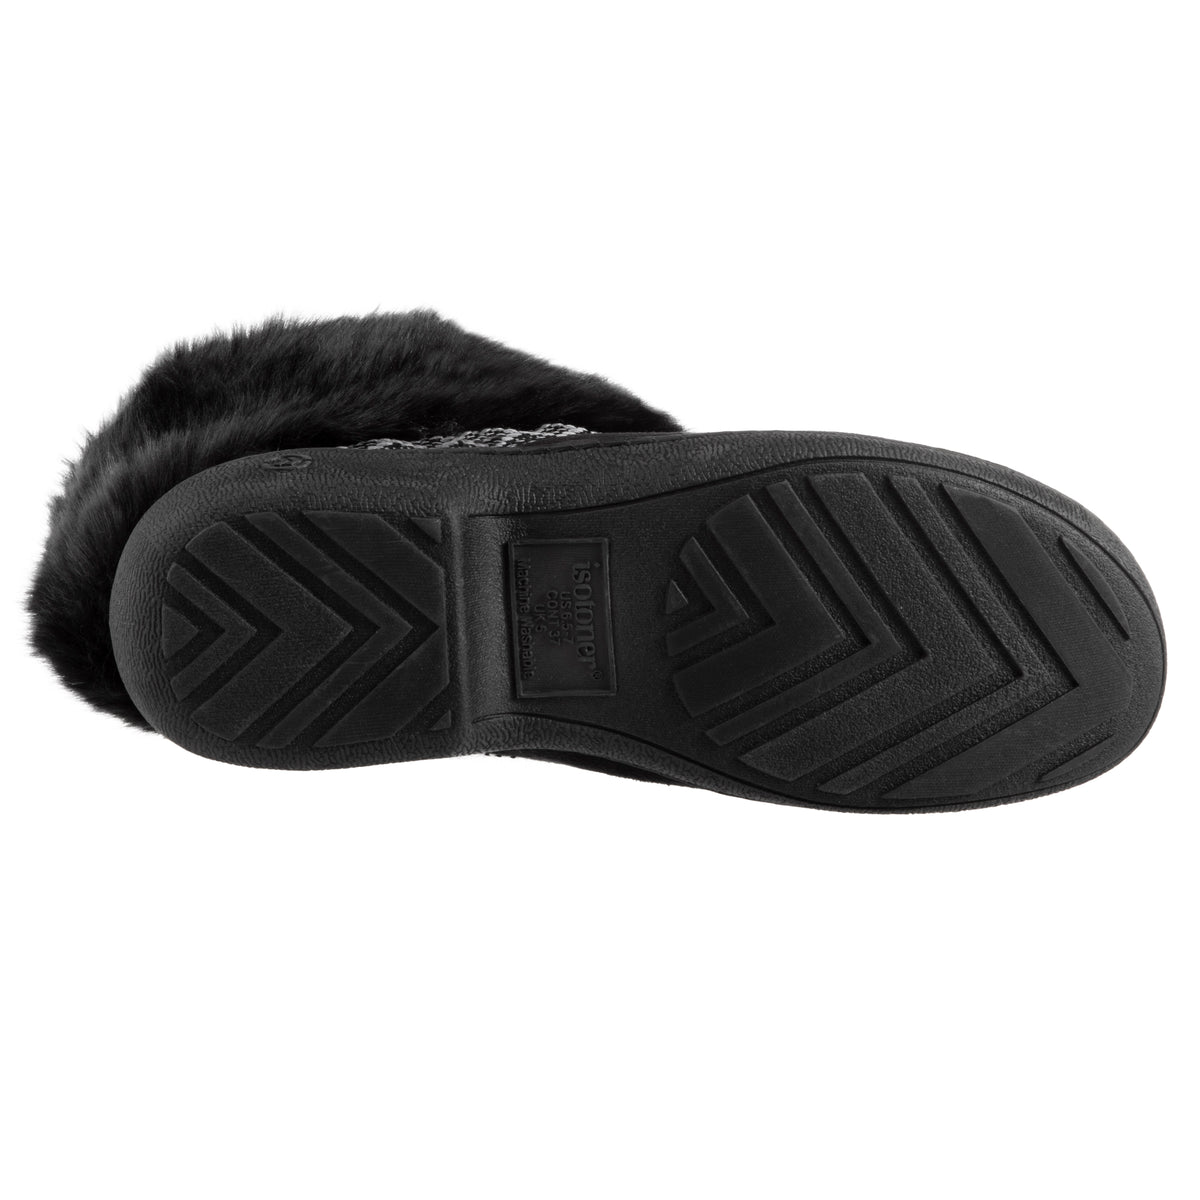 Women's Basil Microsuede Bootie Slippers Black 4